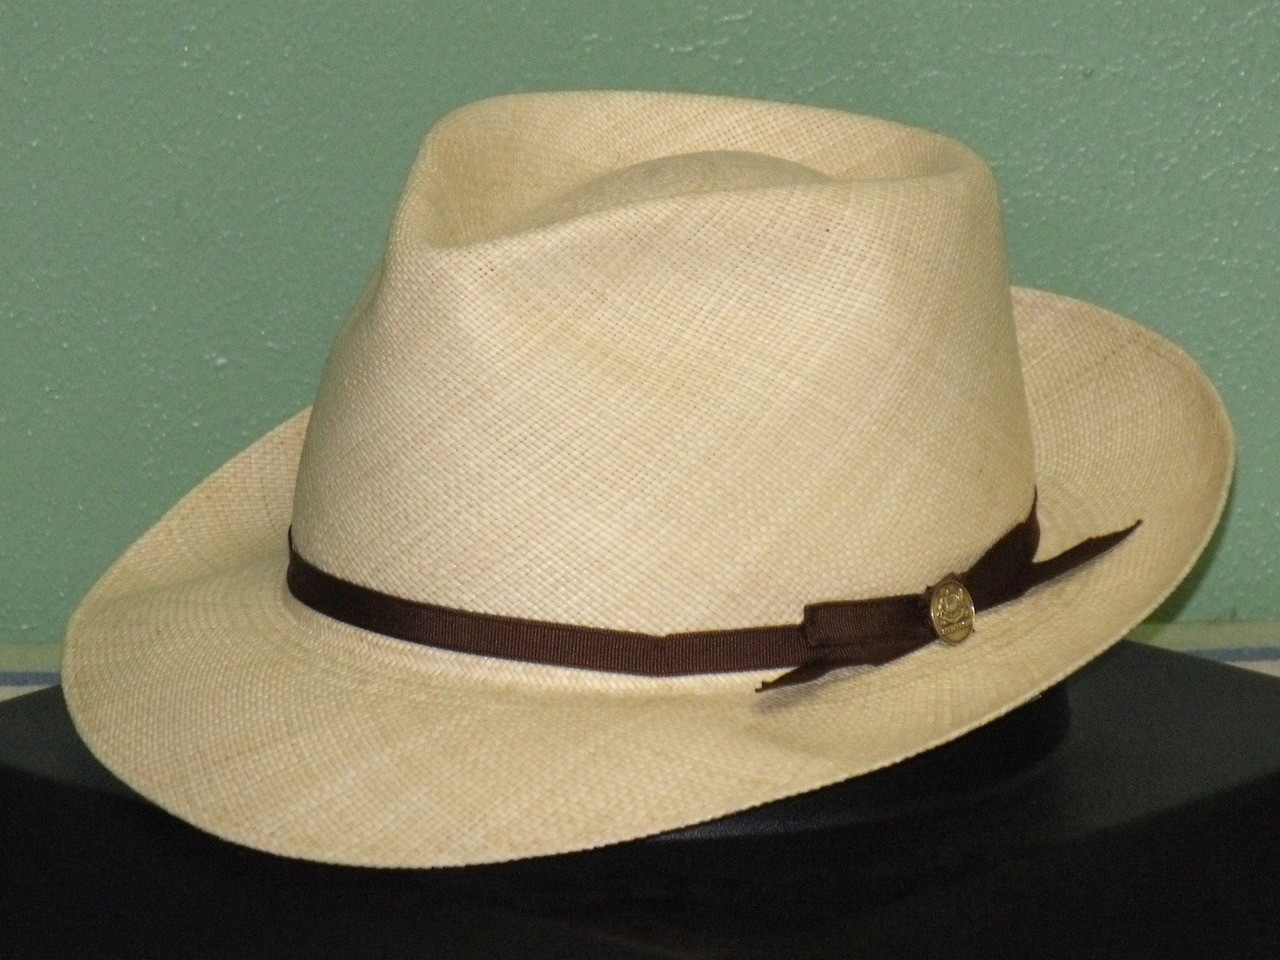 8b39355348bd7 Stetson Forty-Eight Panama Fedora Hat - One 2 mini Ranch